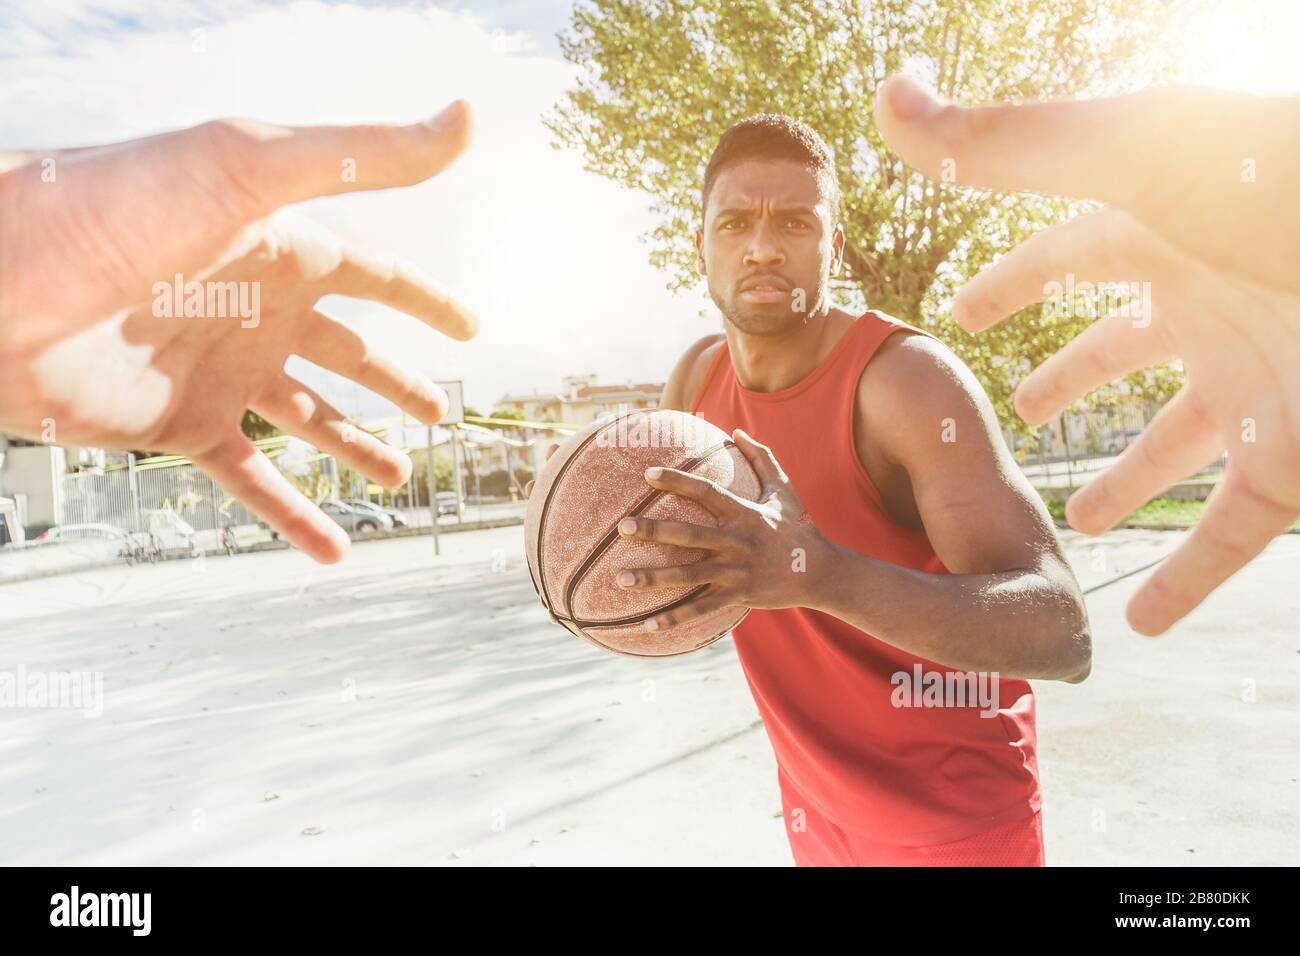 Multiracial basket player playing a game in urban quarter street camp outdoor with back lighting- Athlete hands trying to catch the ball from his oppo Stock Photo